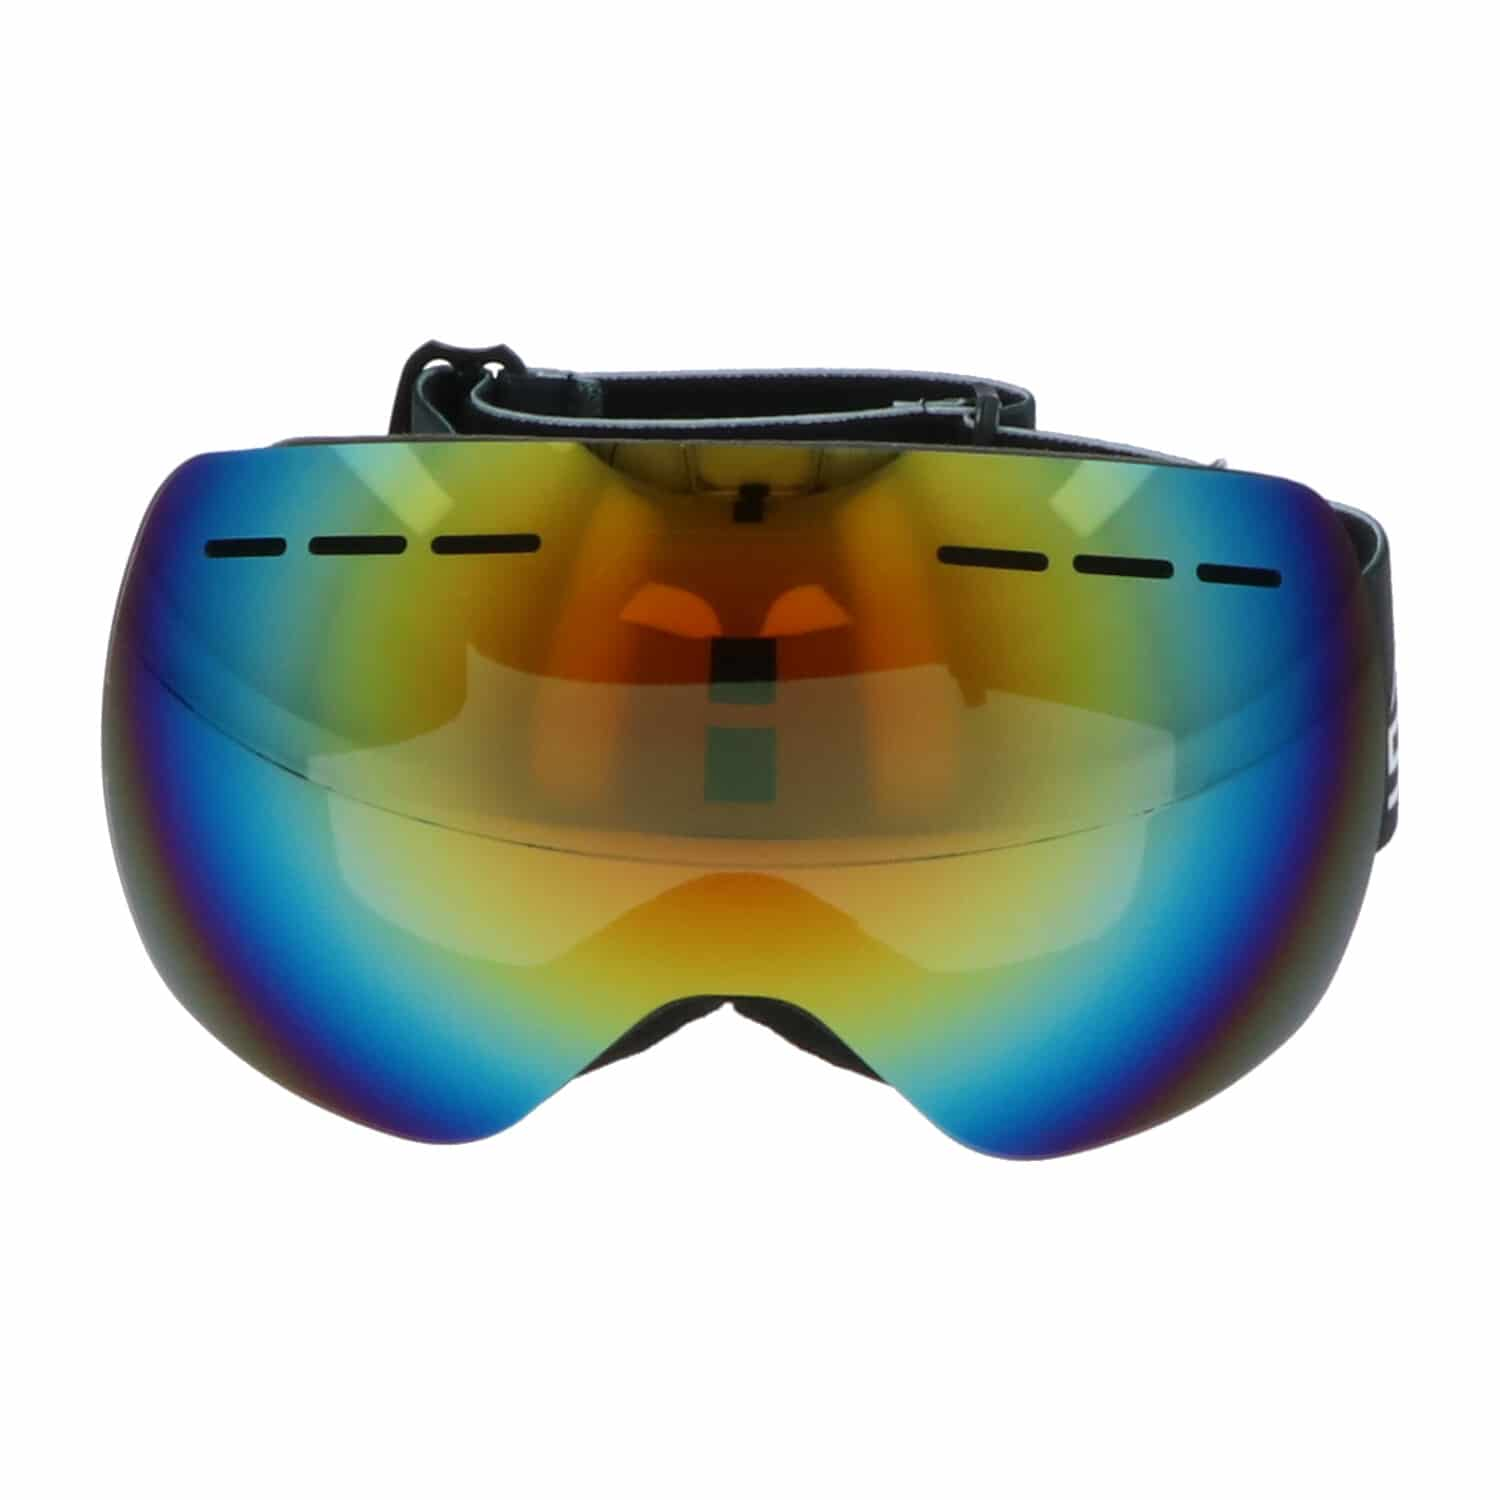 5one® Alpine 1 Red Oil goggle / skibril - anticondens - UV protected